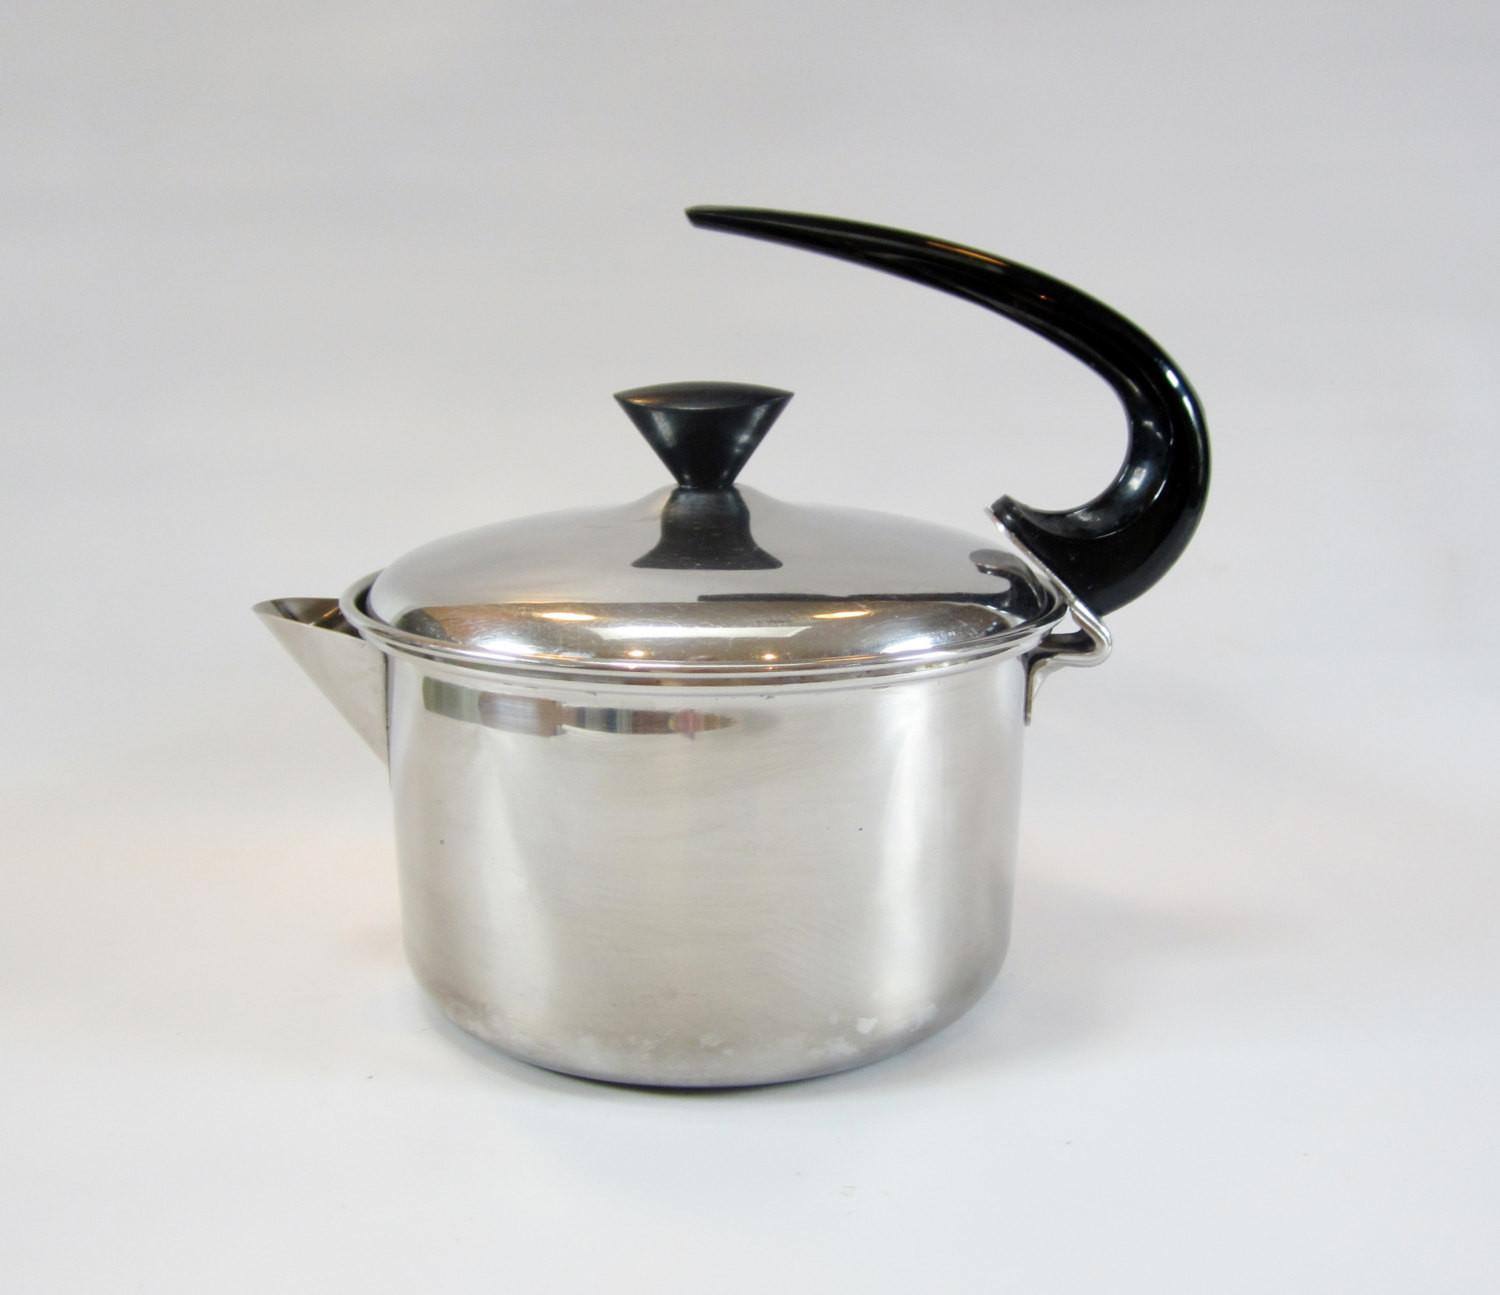 Vintage Kettle Space Age Teapot Stainless Steel 1960s